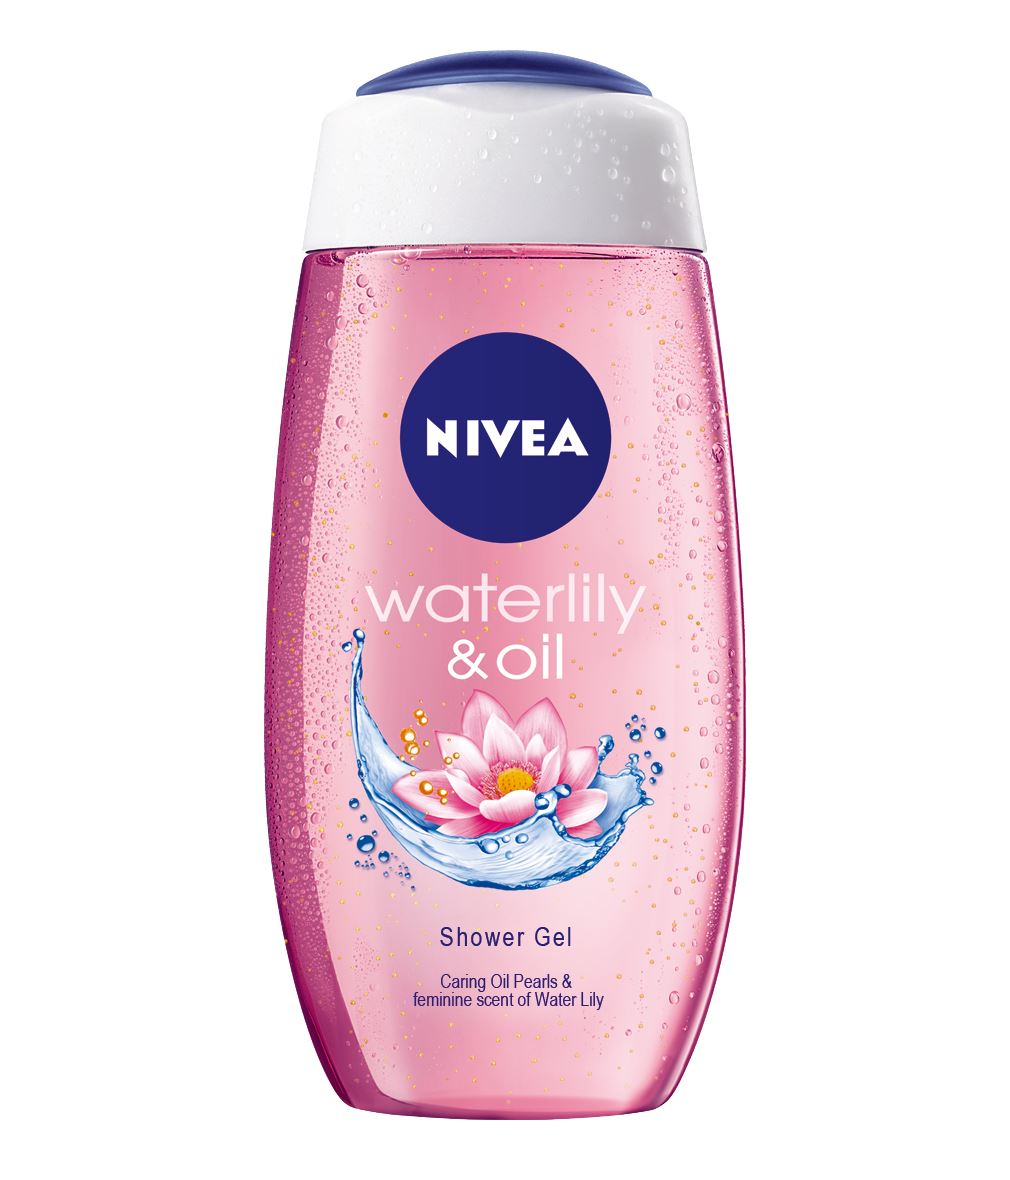 NIVEA Waterllily & Oil tusfürdő 250ml  749Ft